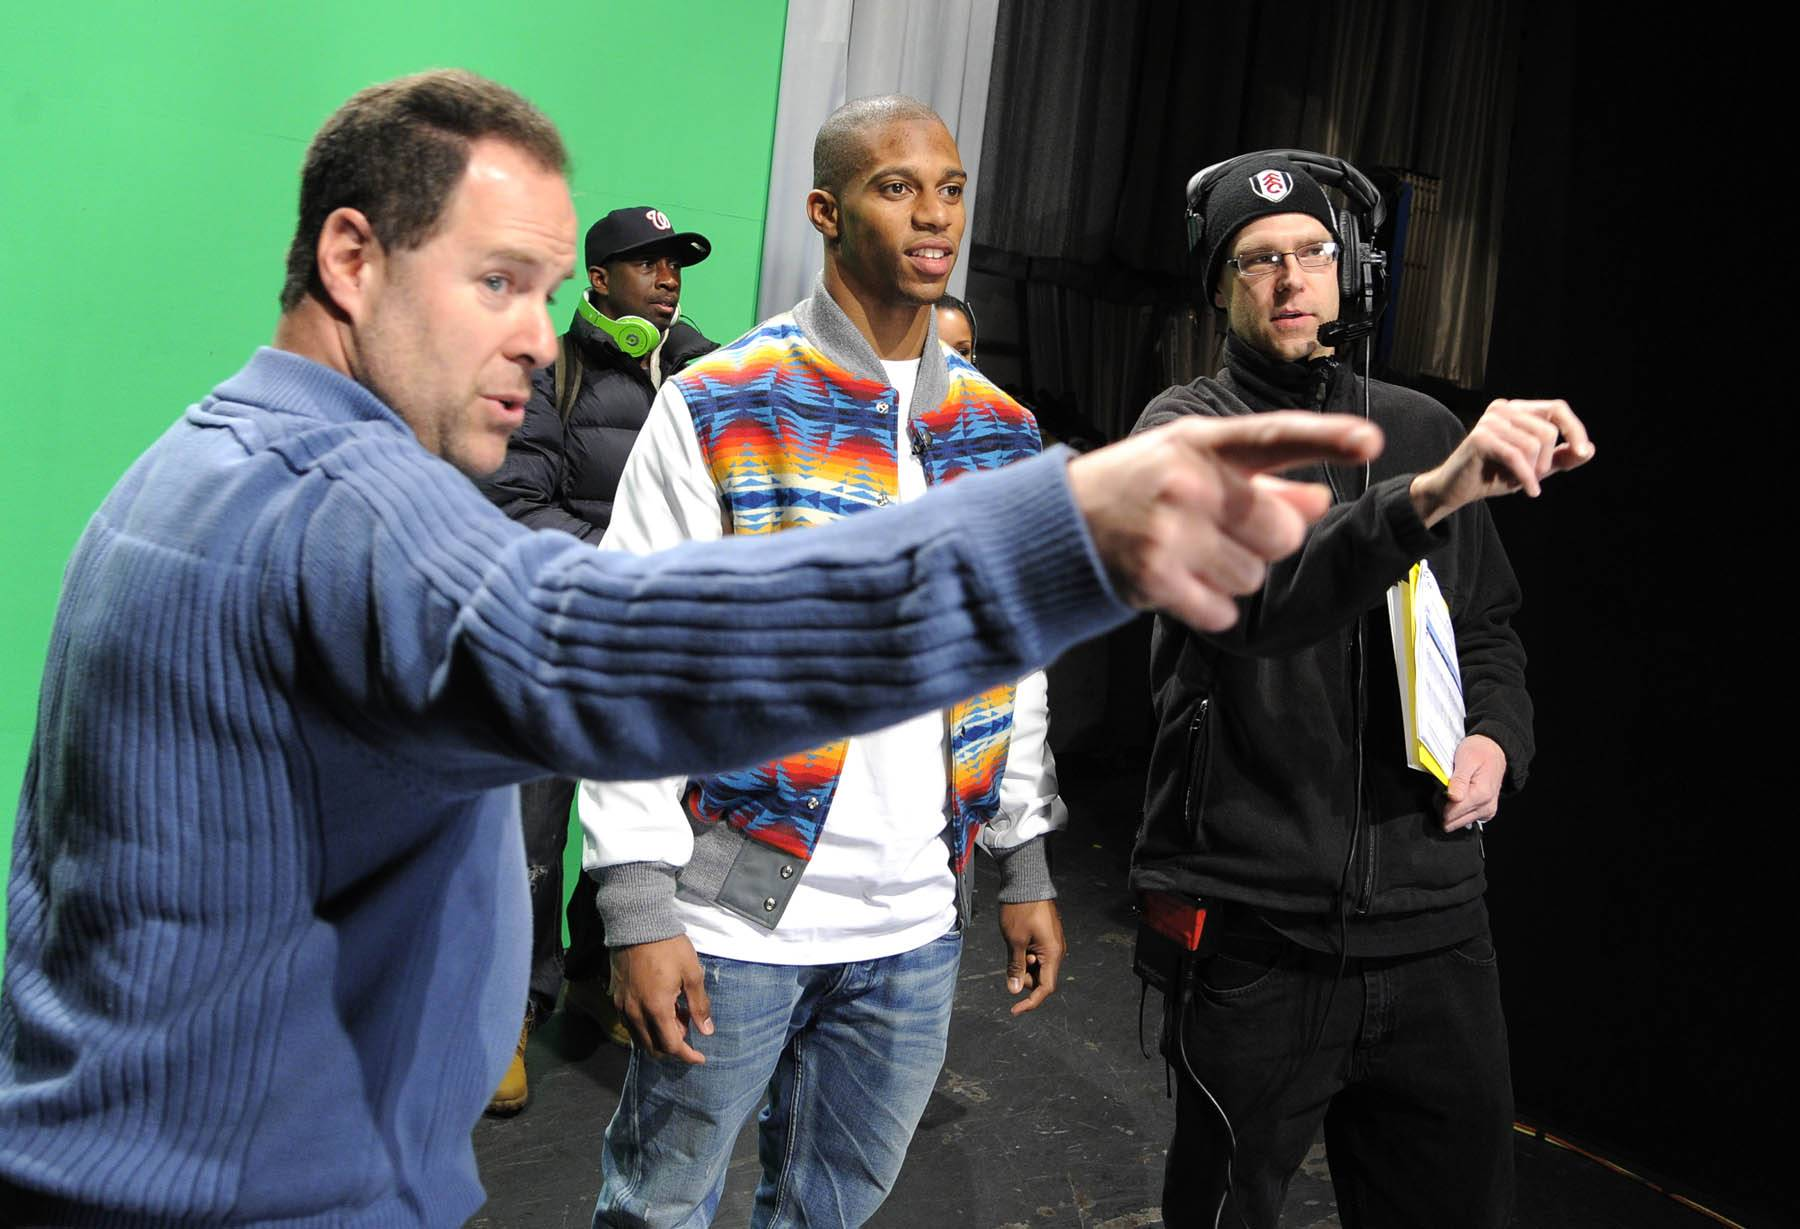 Right There - Victor Cruz of the New York Giants visits 106 & Park. (Photo: John Ricard / BET)